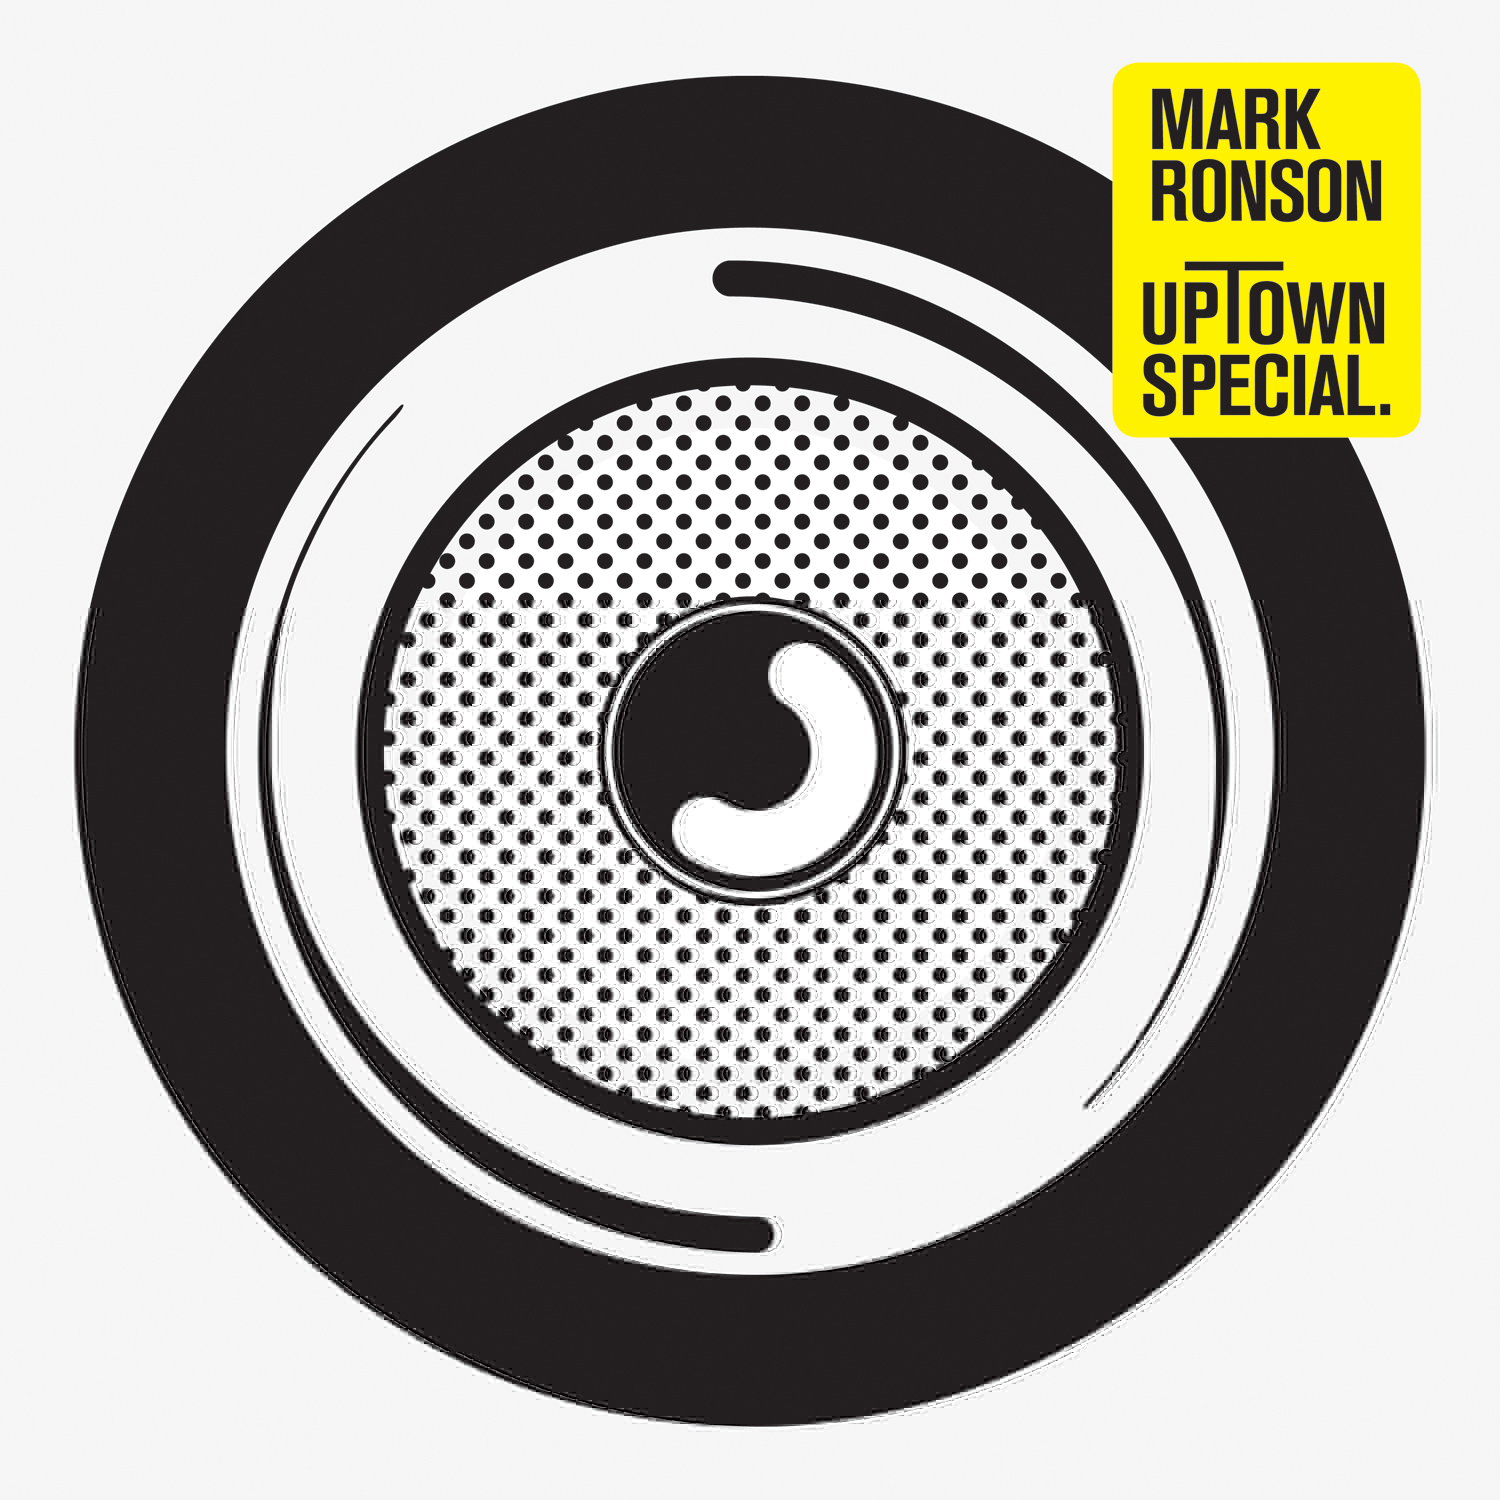 15. Mark Ronson - Uptown Special